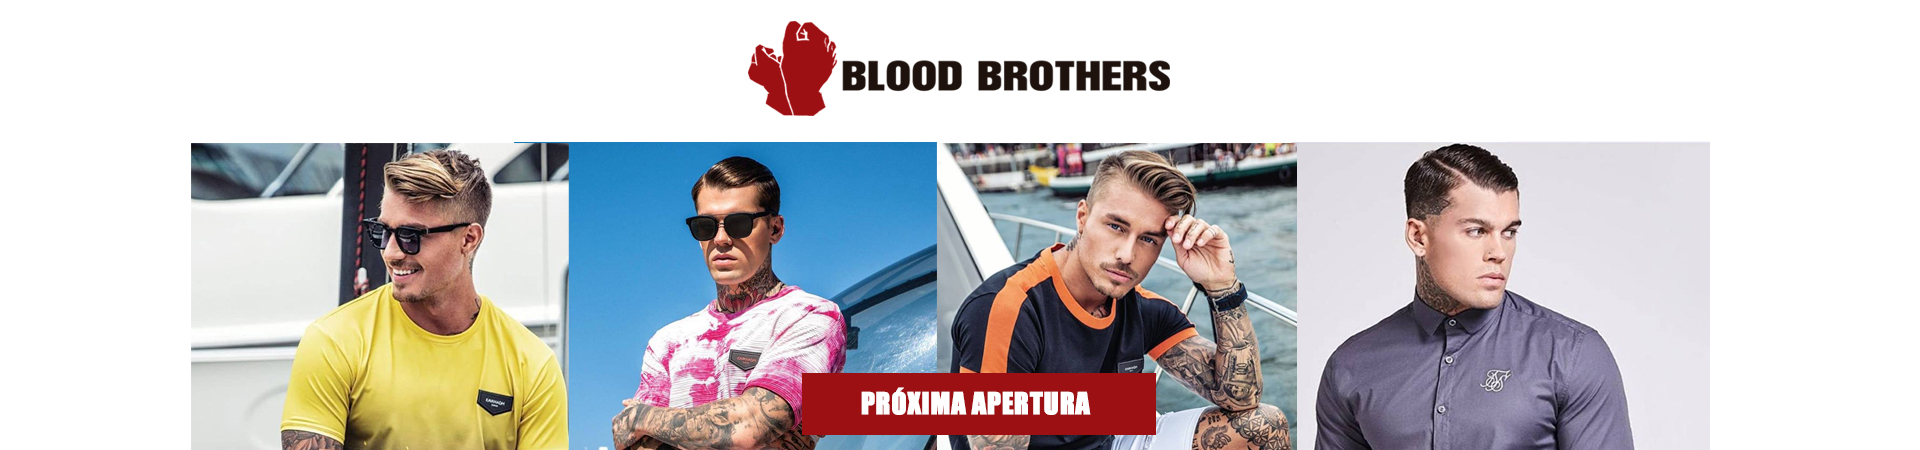 proxima-apertura-blood-brothers